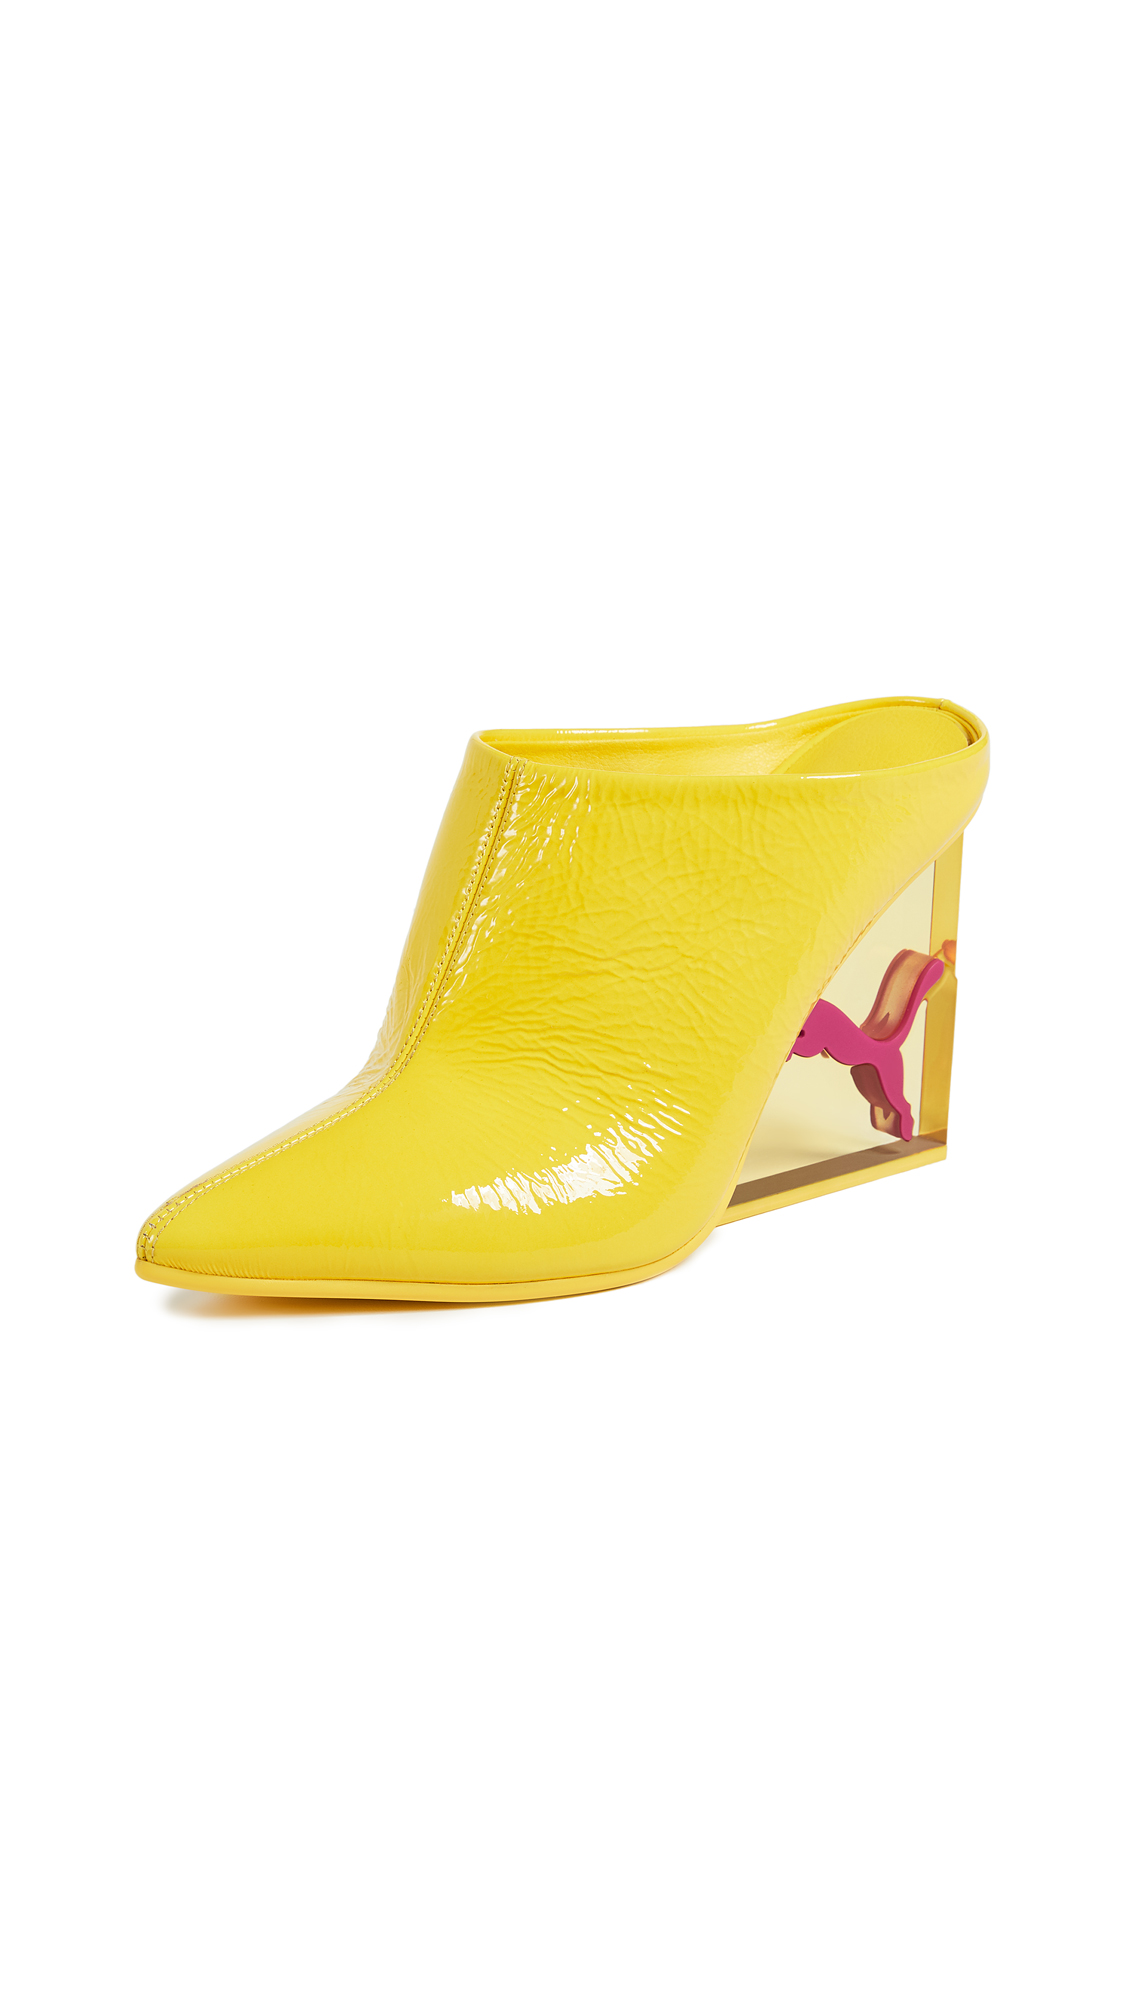 PUMA x FENTY Cat Wedge Mules - Blazing Yellow